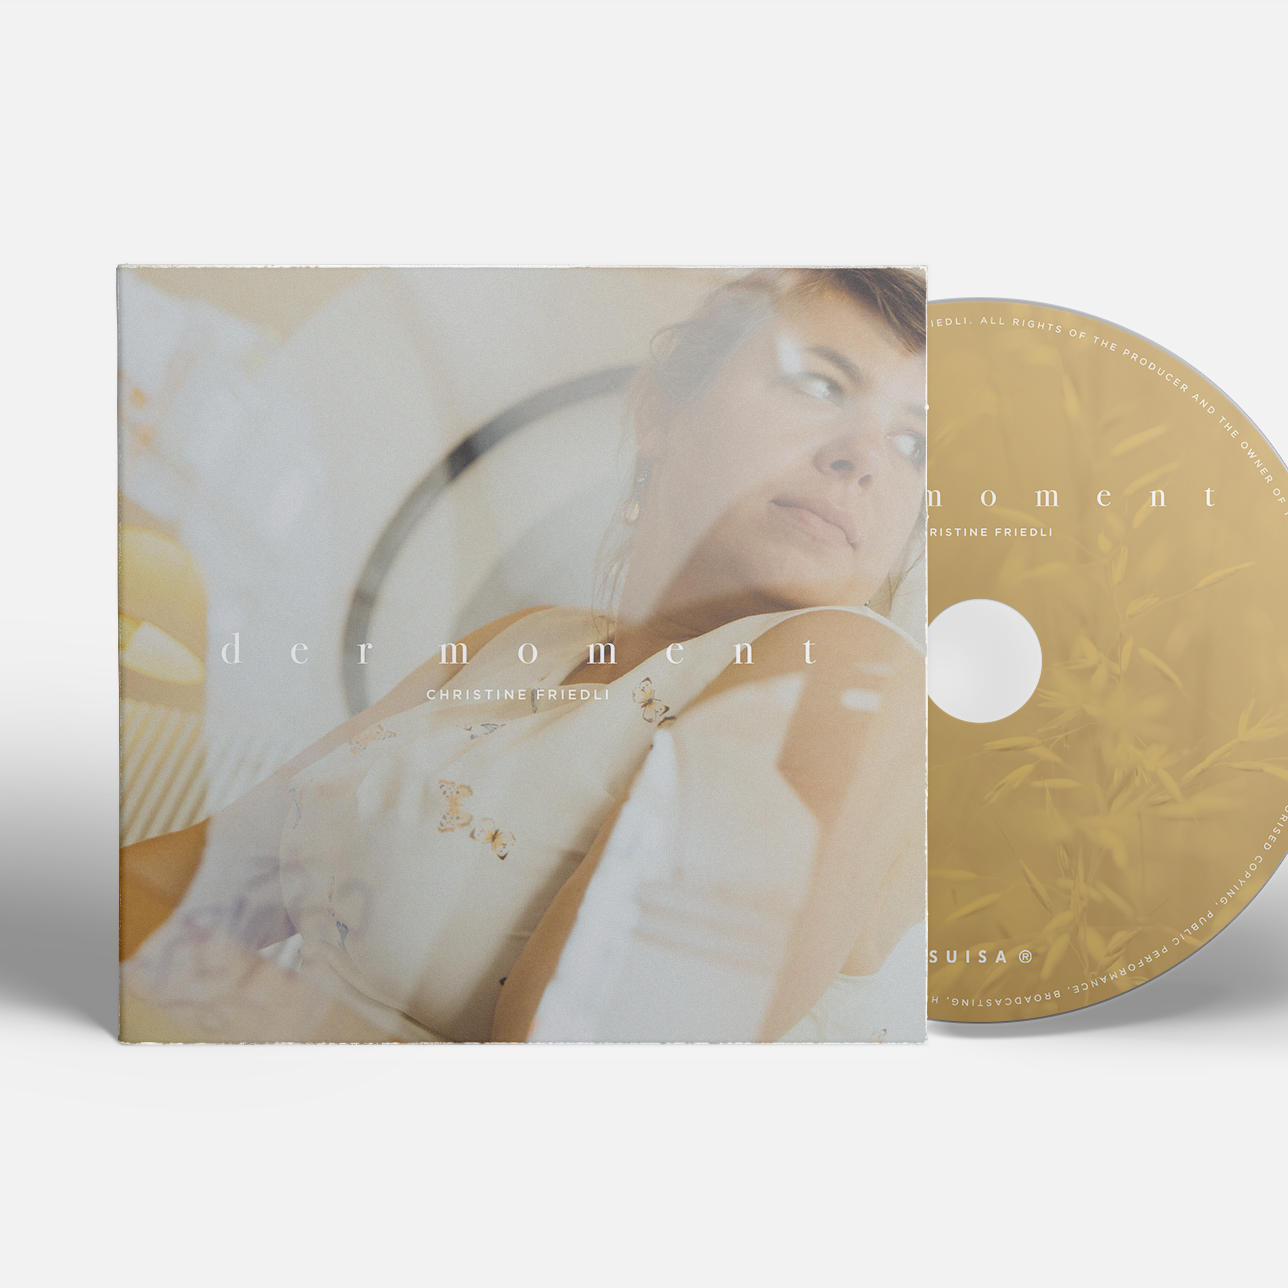 EP Design: Christine Friedli